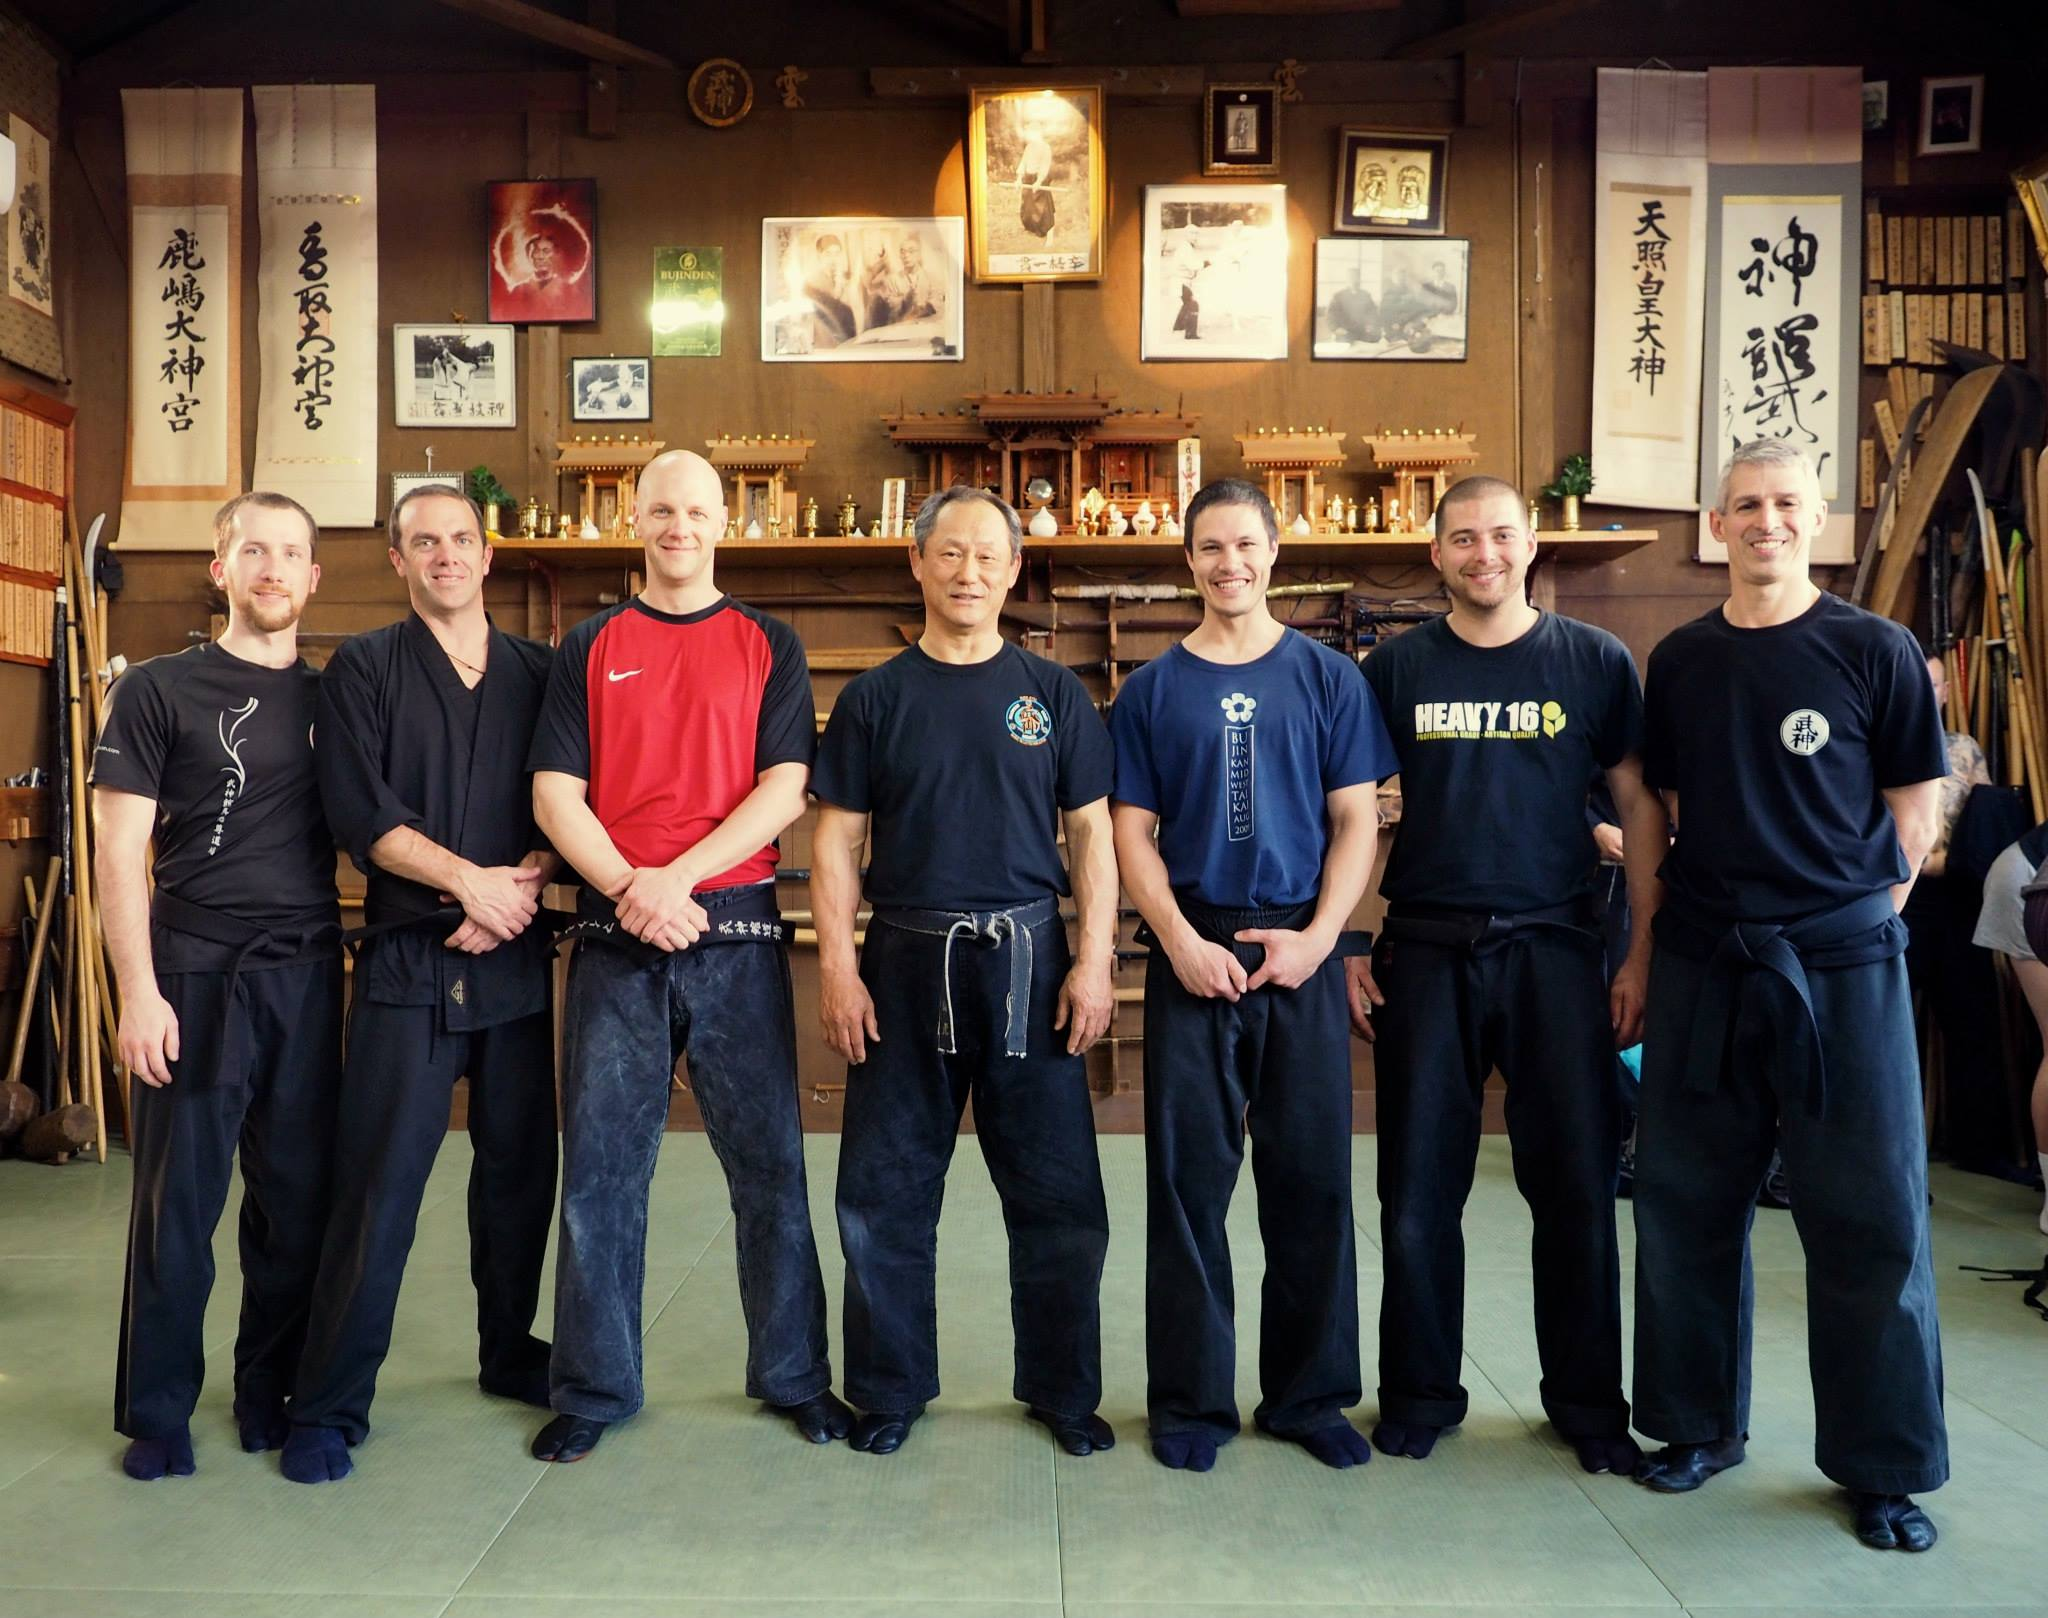 Japan 2014 BMD Ninja Samurai Martial Arts Madison WI